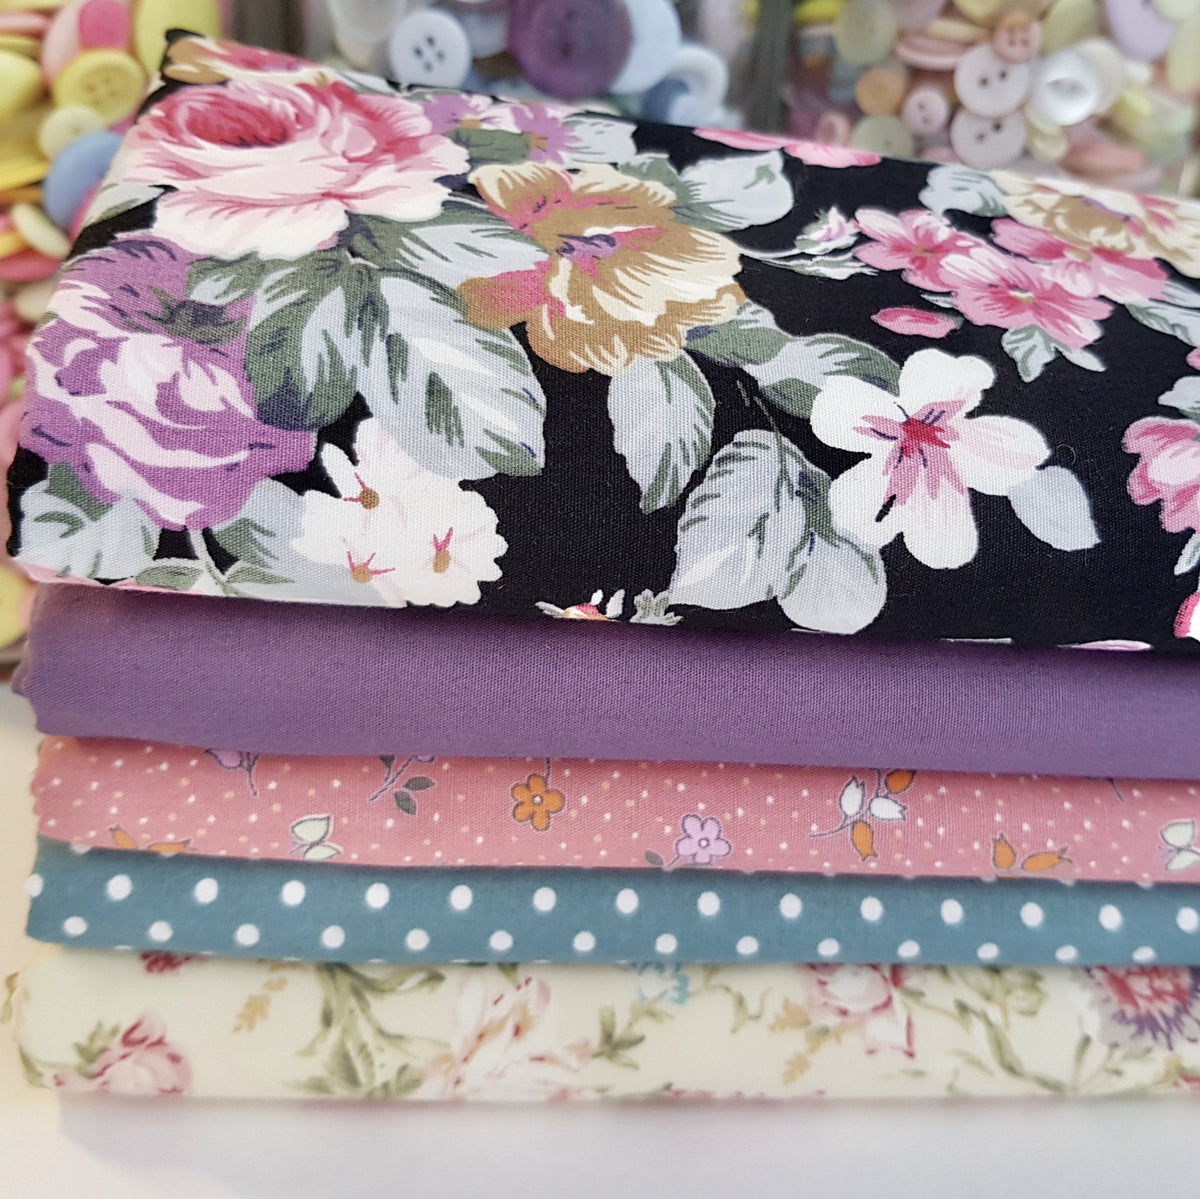 Rose Vintage Floral 5 Piece Fat Quarter Bundle, 100% Cotton Poplin